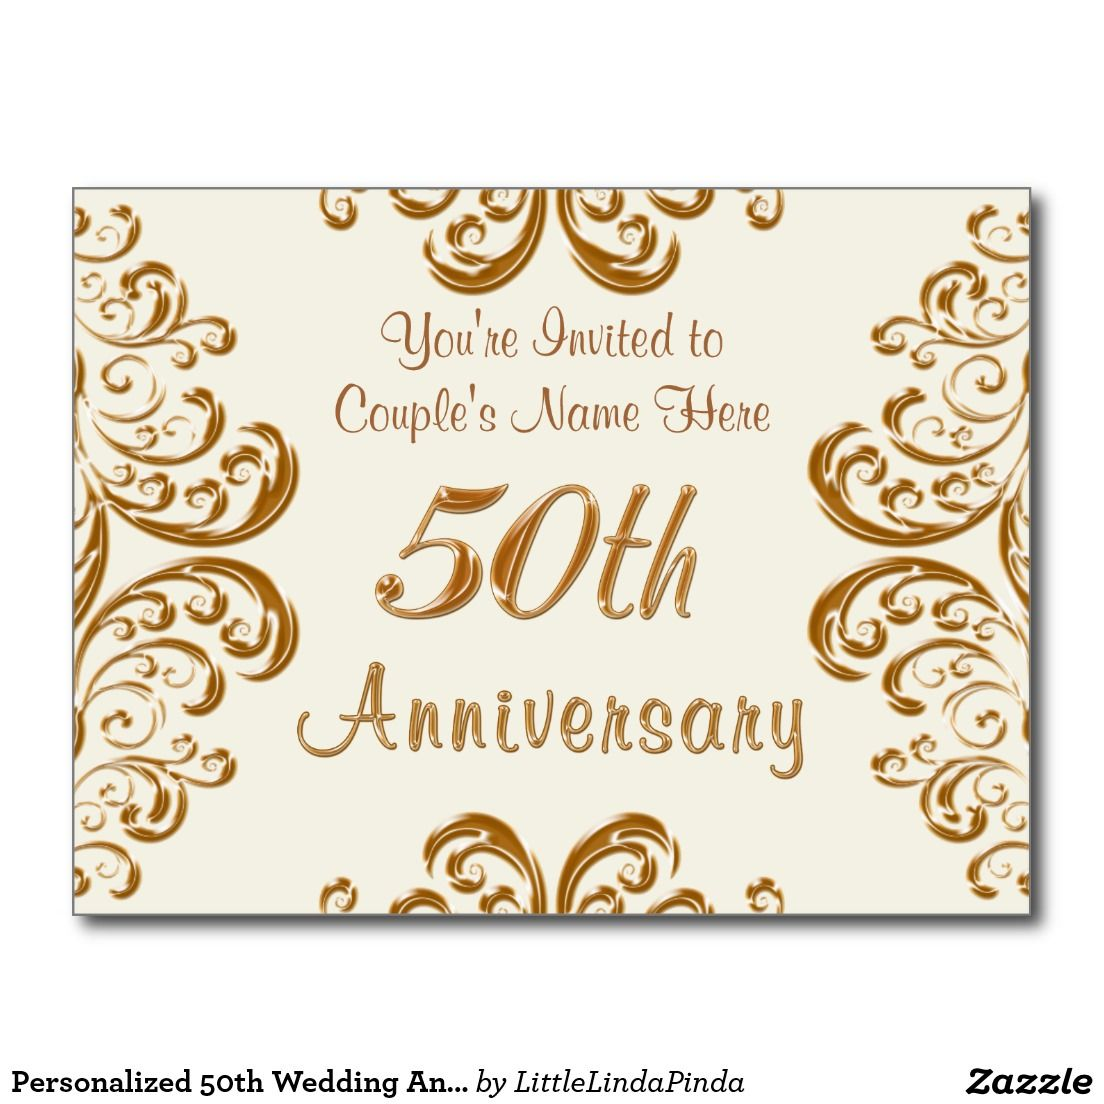 Personalized 50th wedding anniversary invitations 50th wedding inexpensive and beautiful personalized 50th anniversary invitations postcards click http stopboris Images